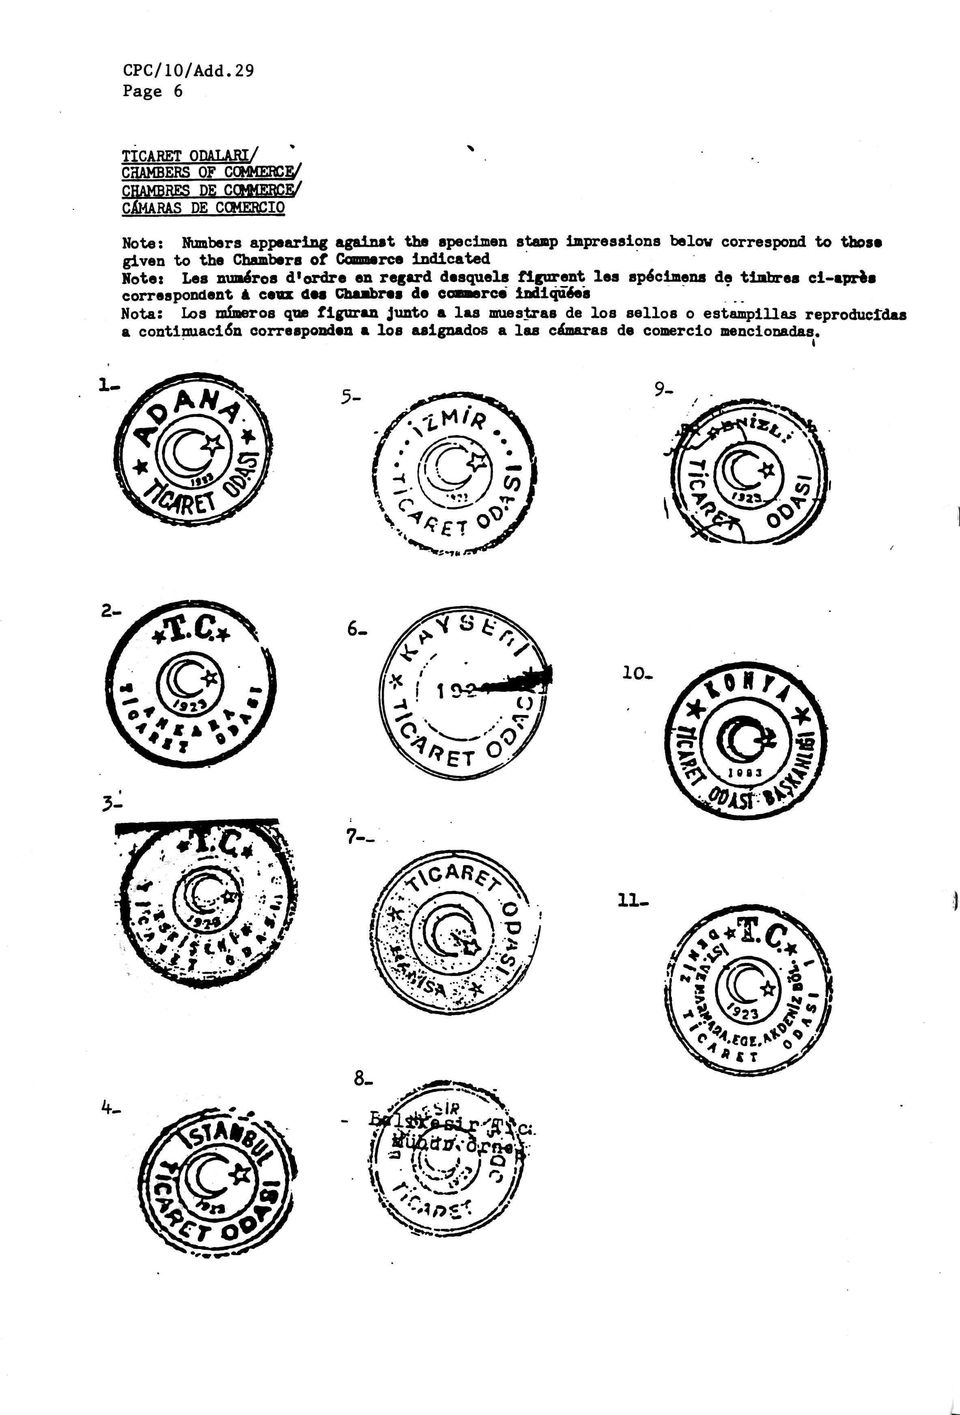 stamp impressions below correspond to those given to the Chambers of Commerce indicated Note: Les numéros d'ordre en regard desquels